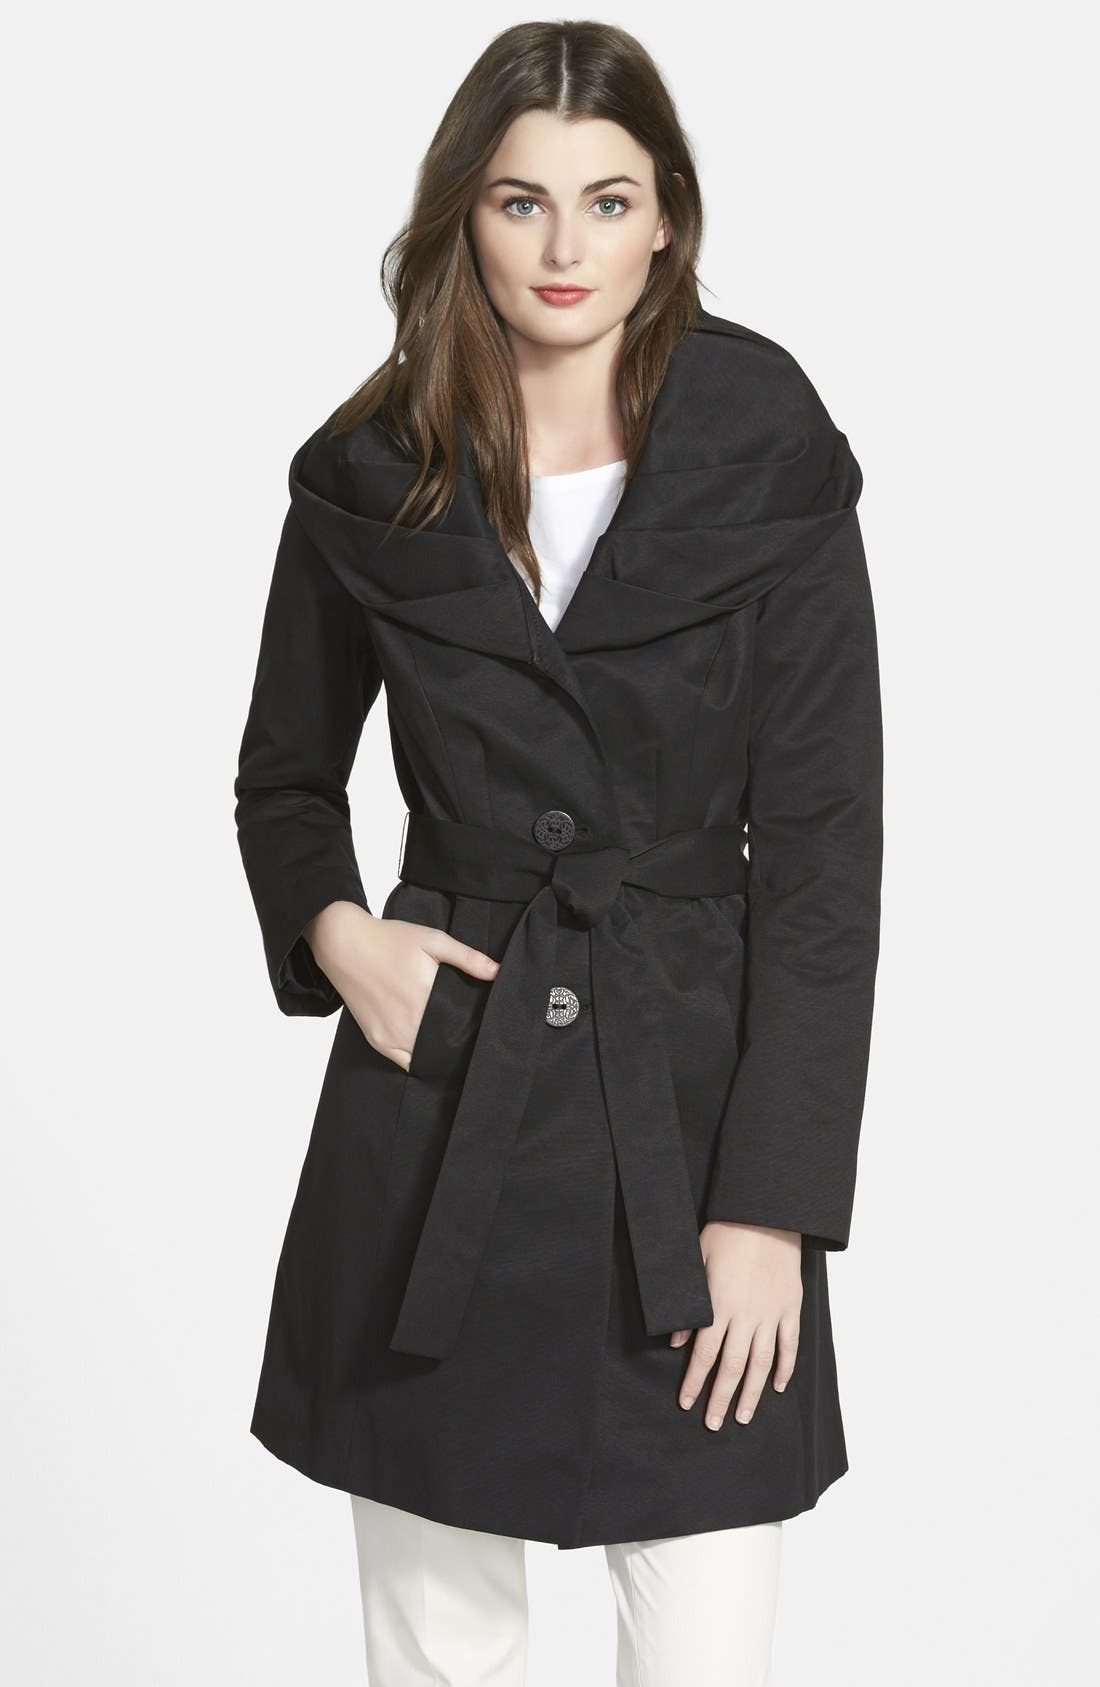 'Cheryl' Trench Coat,                             Main thumbnail 1, color,                             001